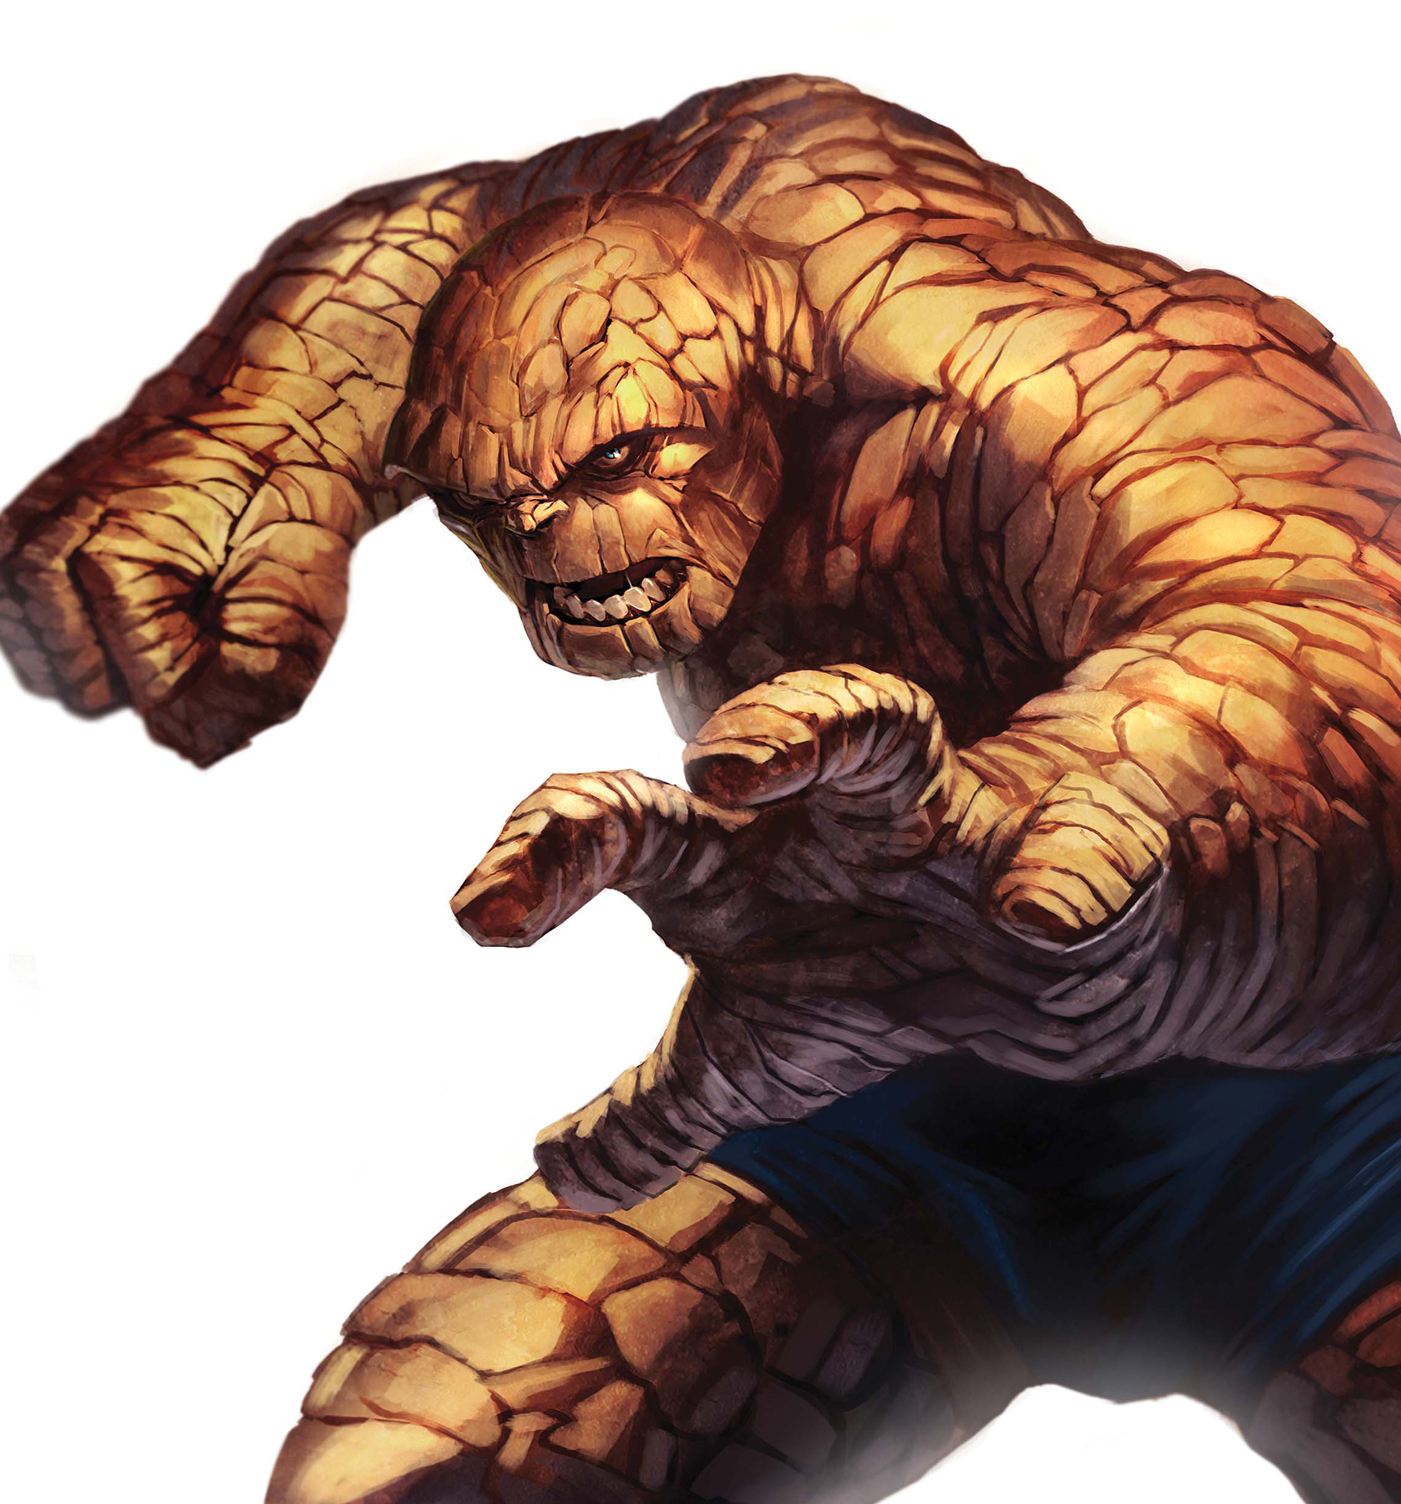 The Thing from Marvel Comics